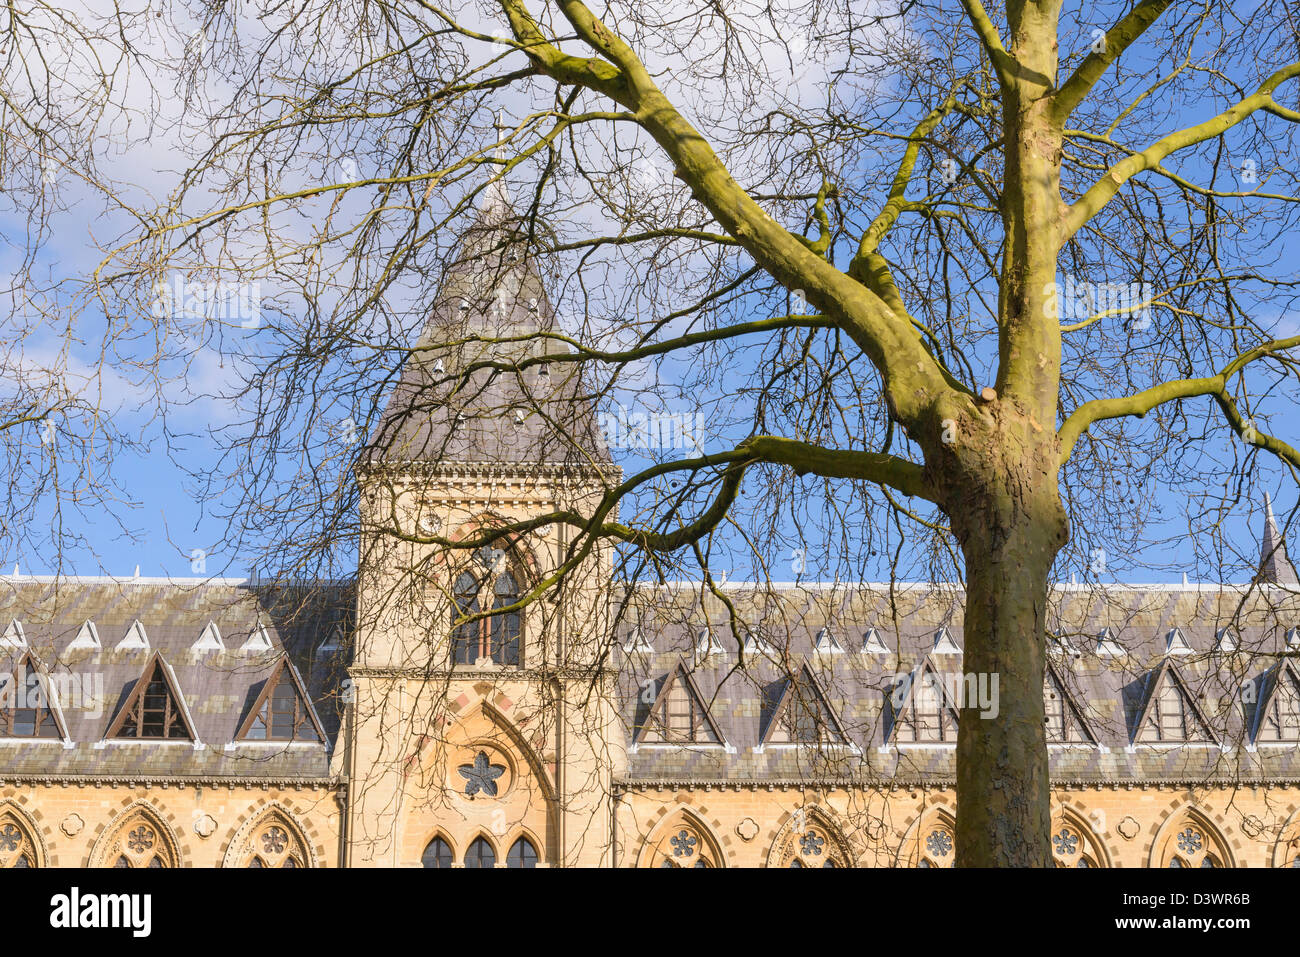 Facade of natural history and Pitt Rivers museum Oxford University England UK - Stock Image